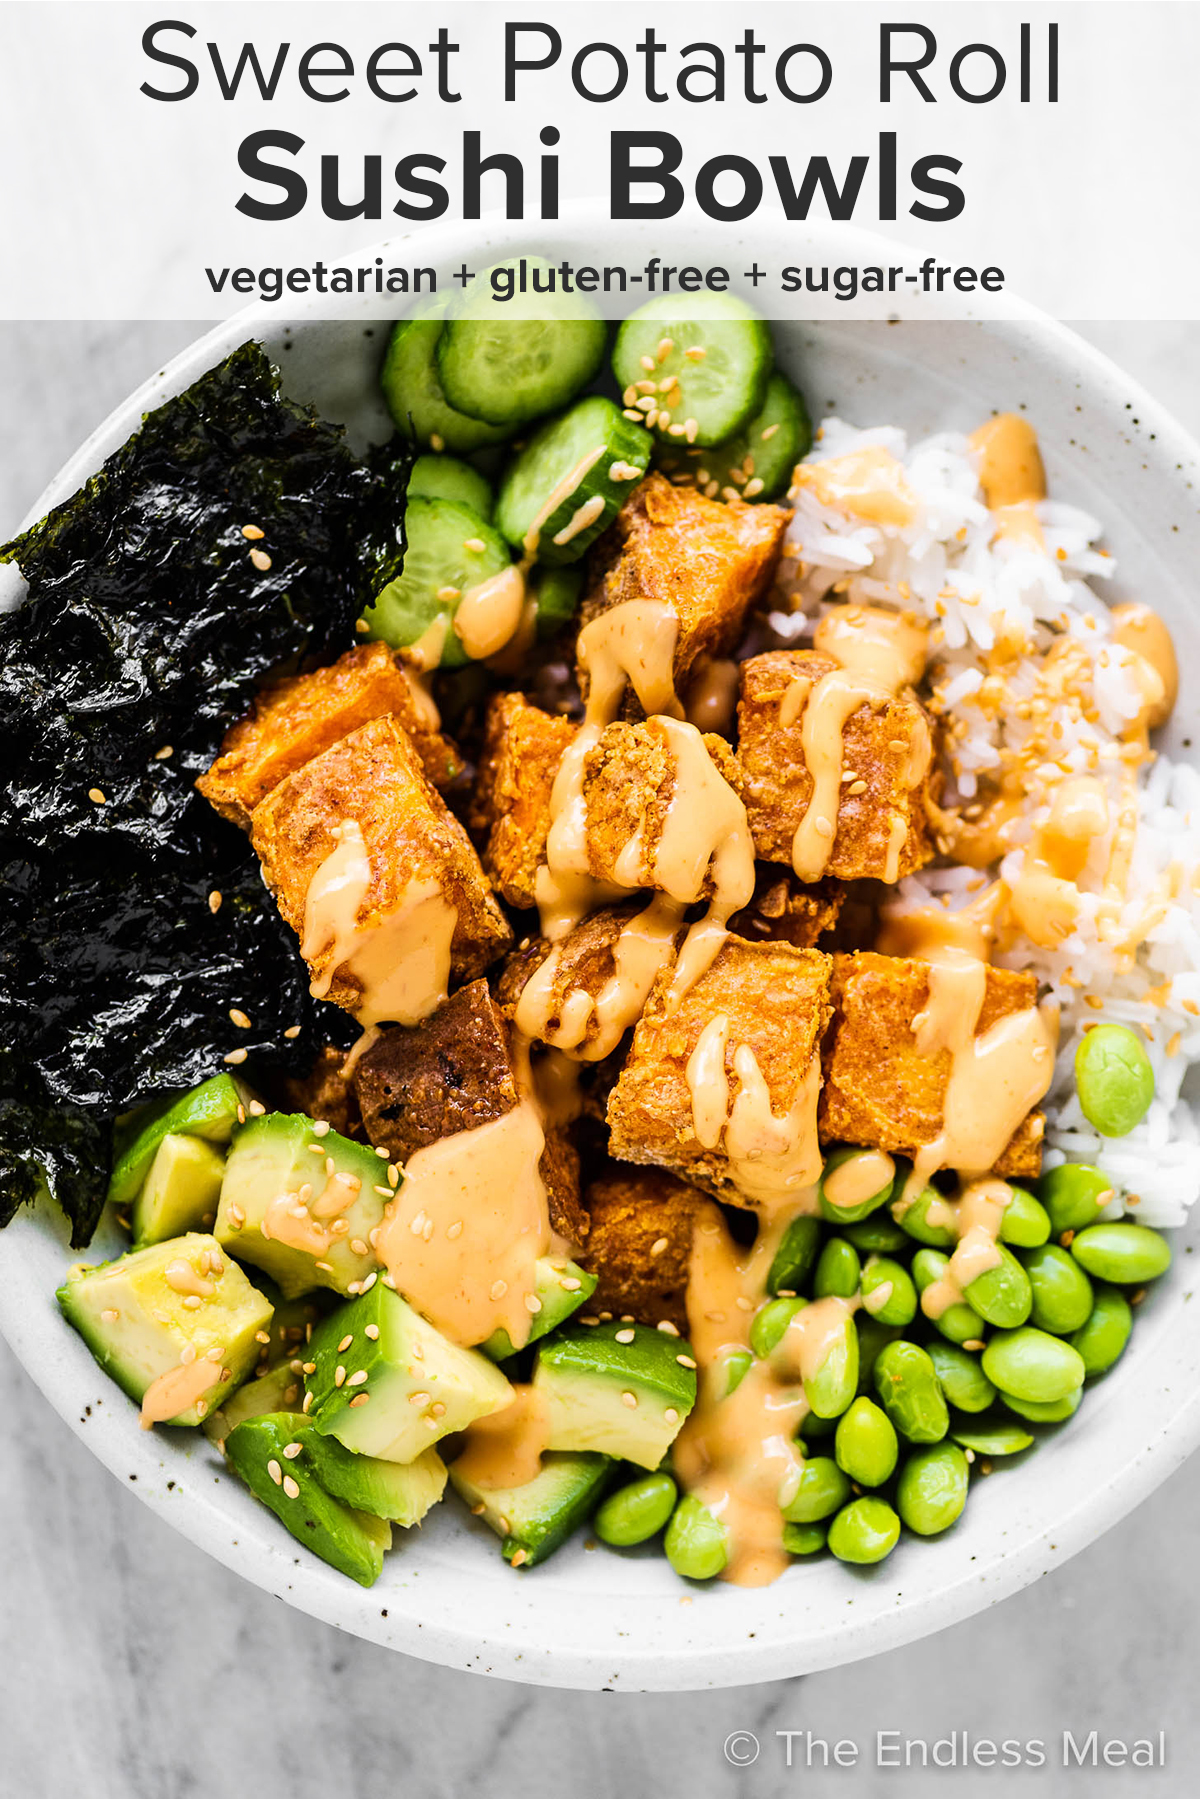 Sweet Potato Roll Sushi Bowl on a white plate with the recipe title on top of the picture.